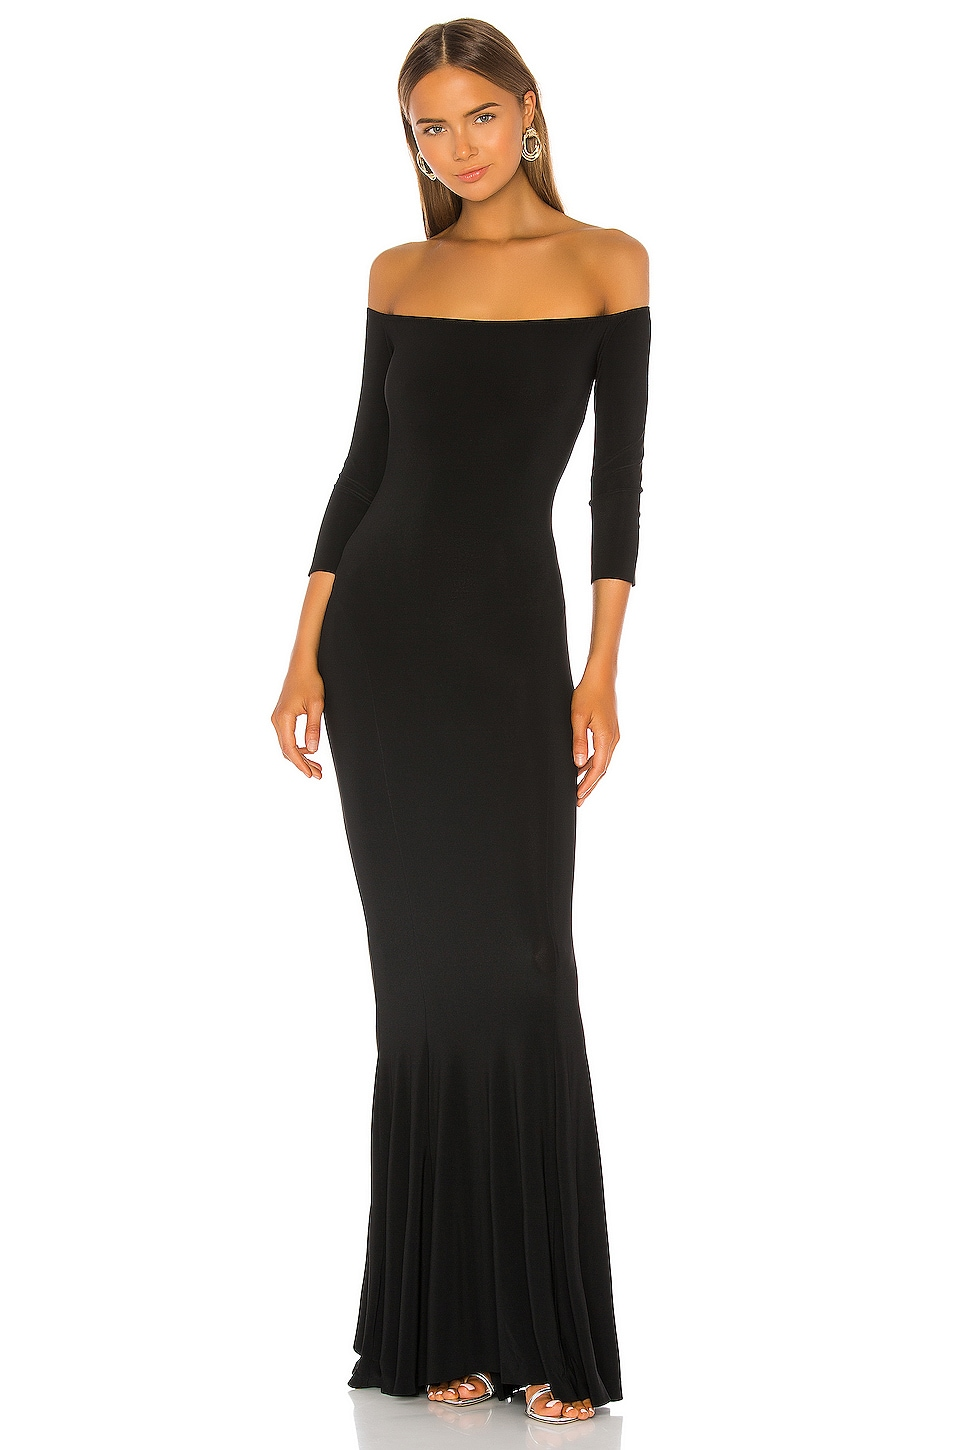 Norma Kamali Off the Shoulder Fishtail Gown in Black